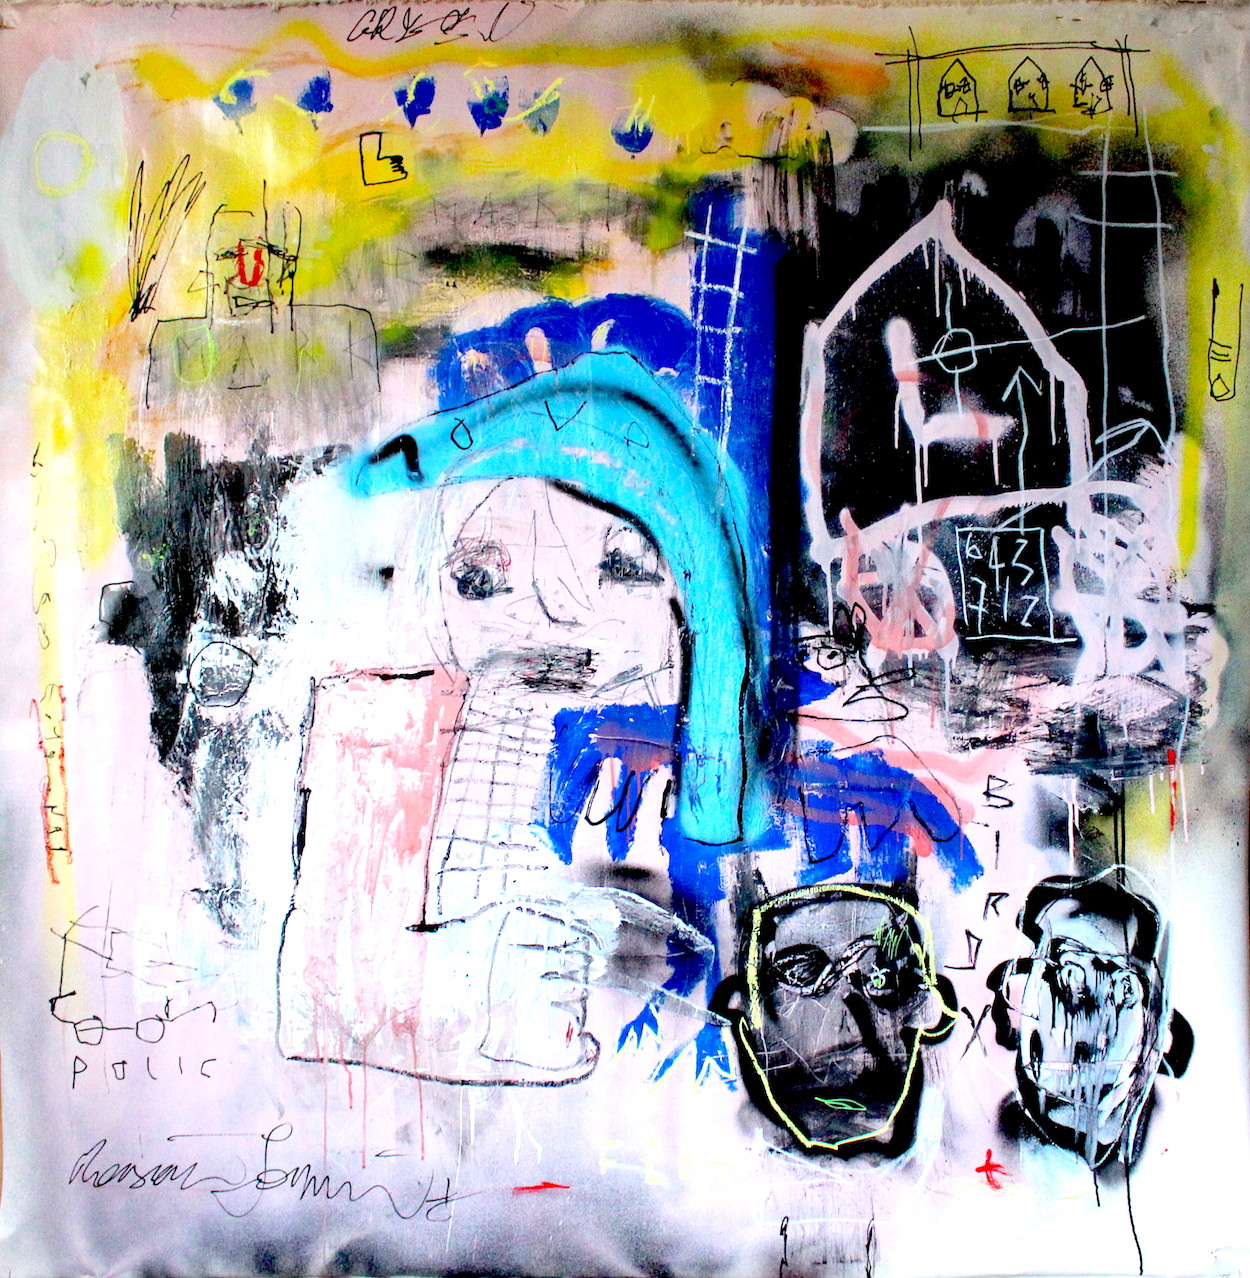 Untitled by James Green Artist and Monsieur Jamin